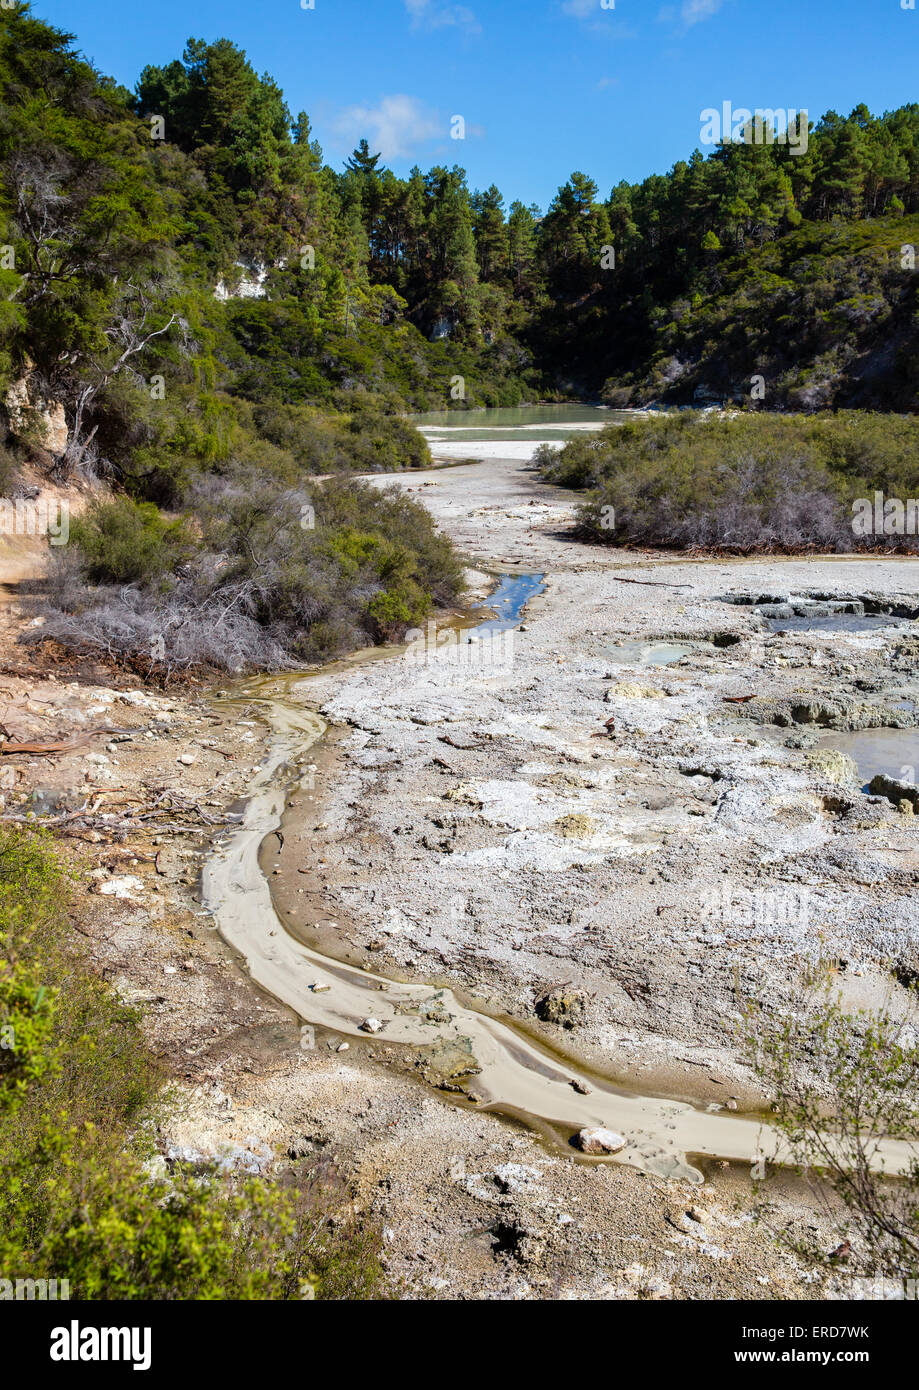 Volcanic springs and travertine pools at Wai o Tapu Thermal Wonderland in central North Island New Zealand - Stock Image